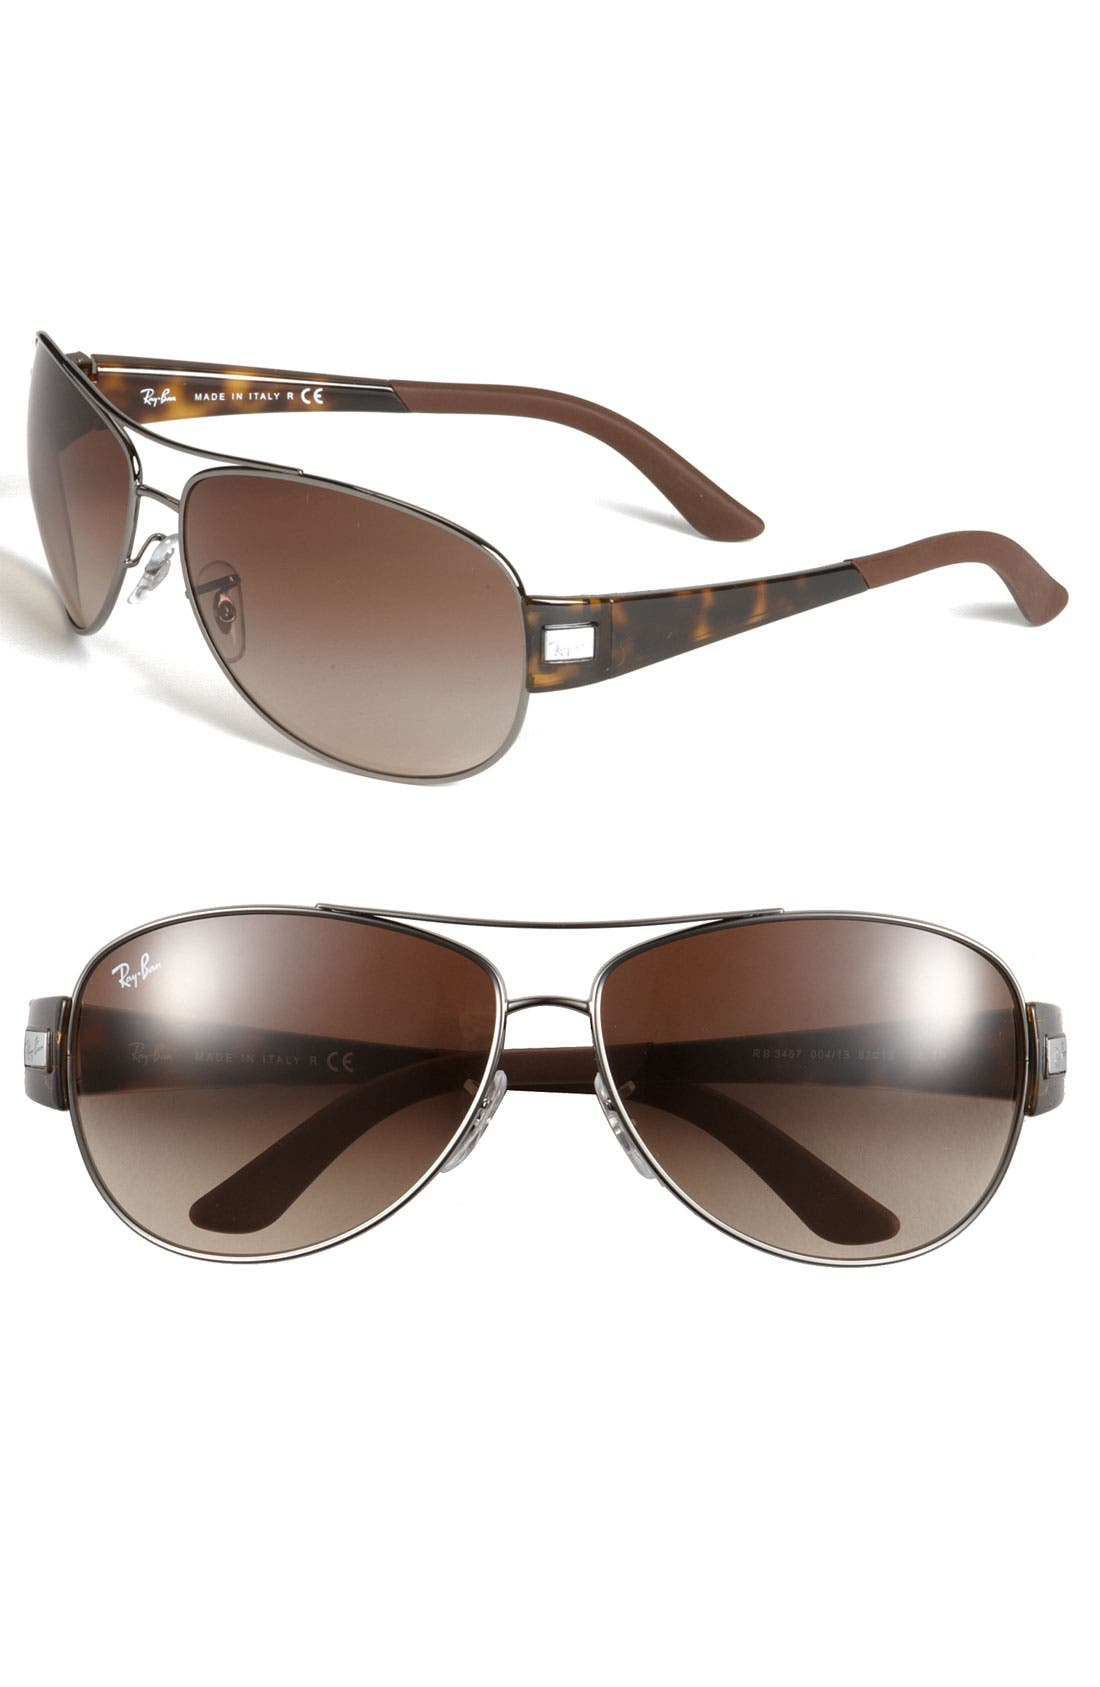 Alternate Image 1 Selected - Ray-Ban 'Morphed' 63mm Aviator Sunglasses